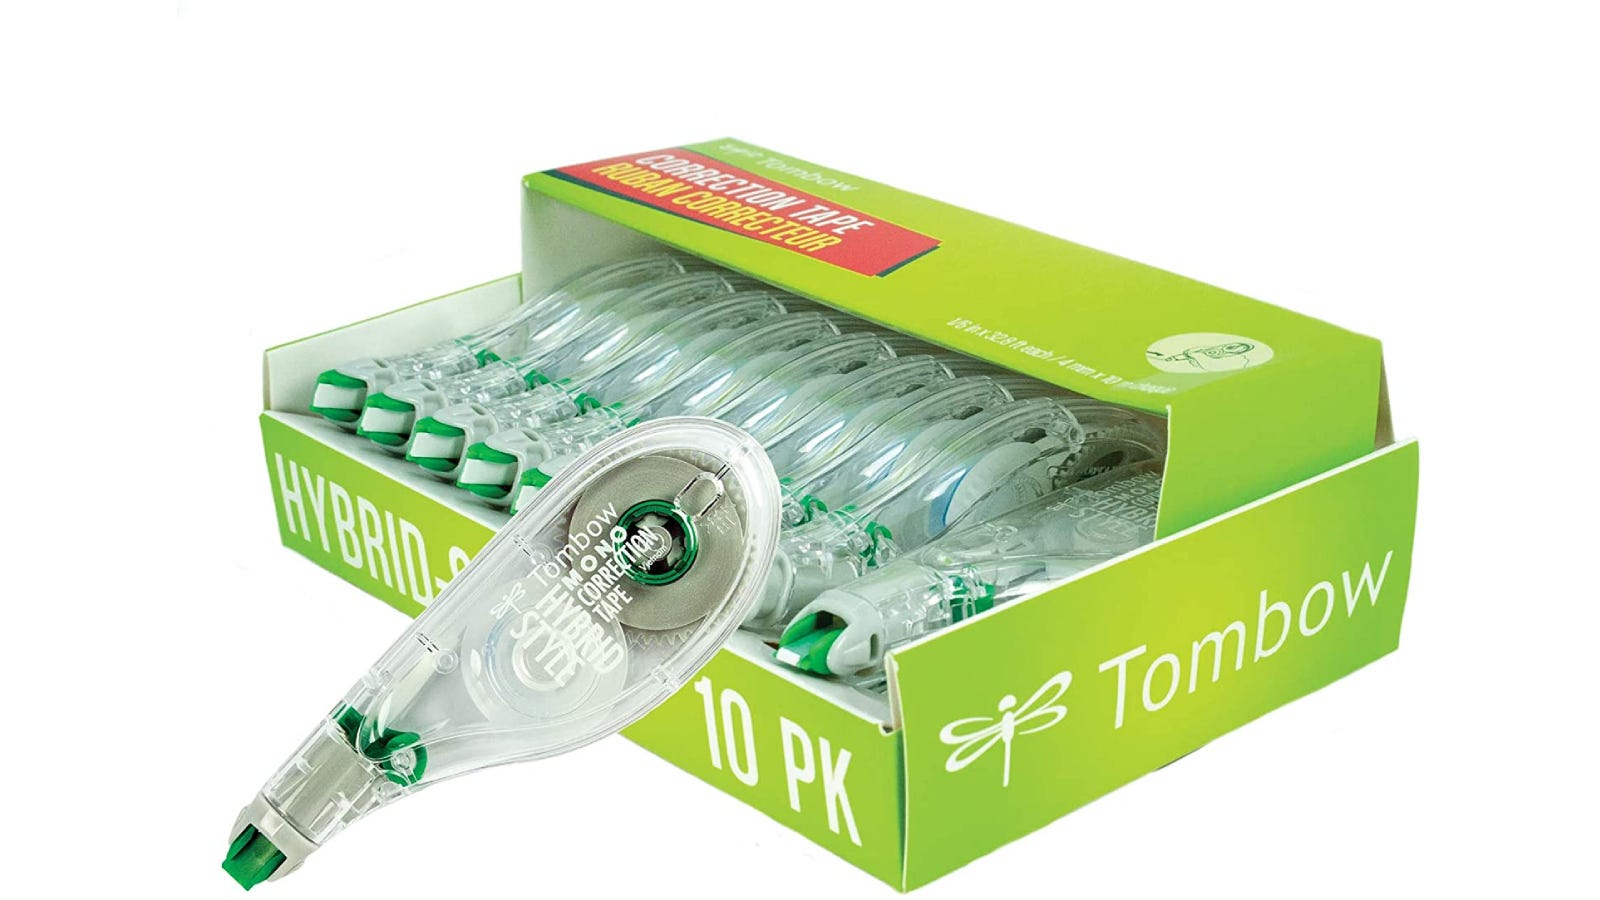 10 correction tapes within their green box packaging